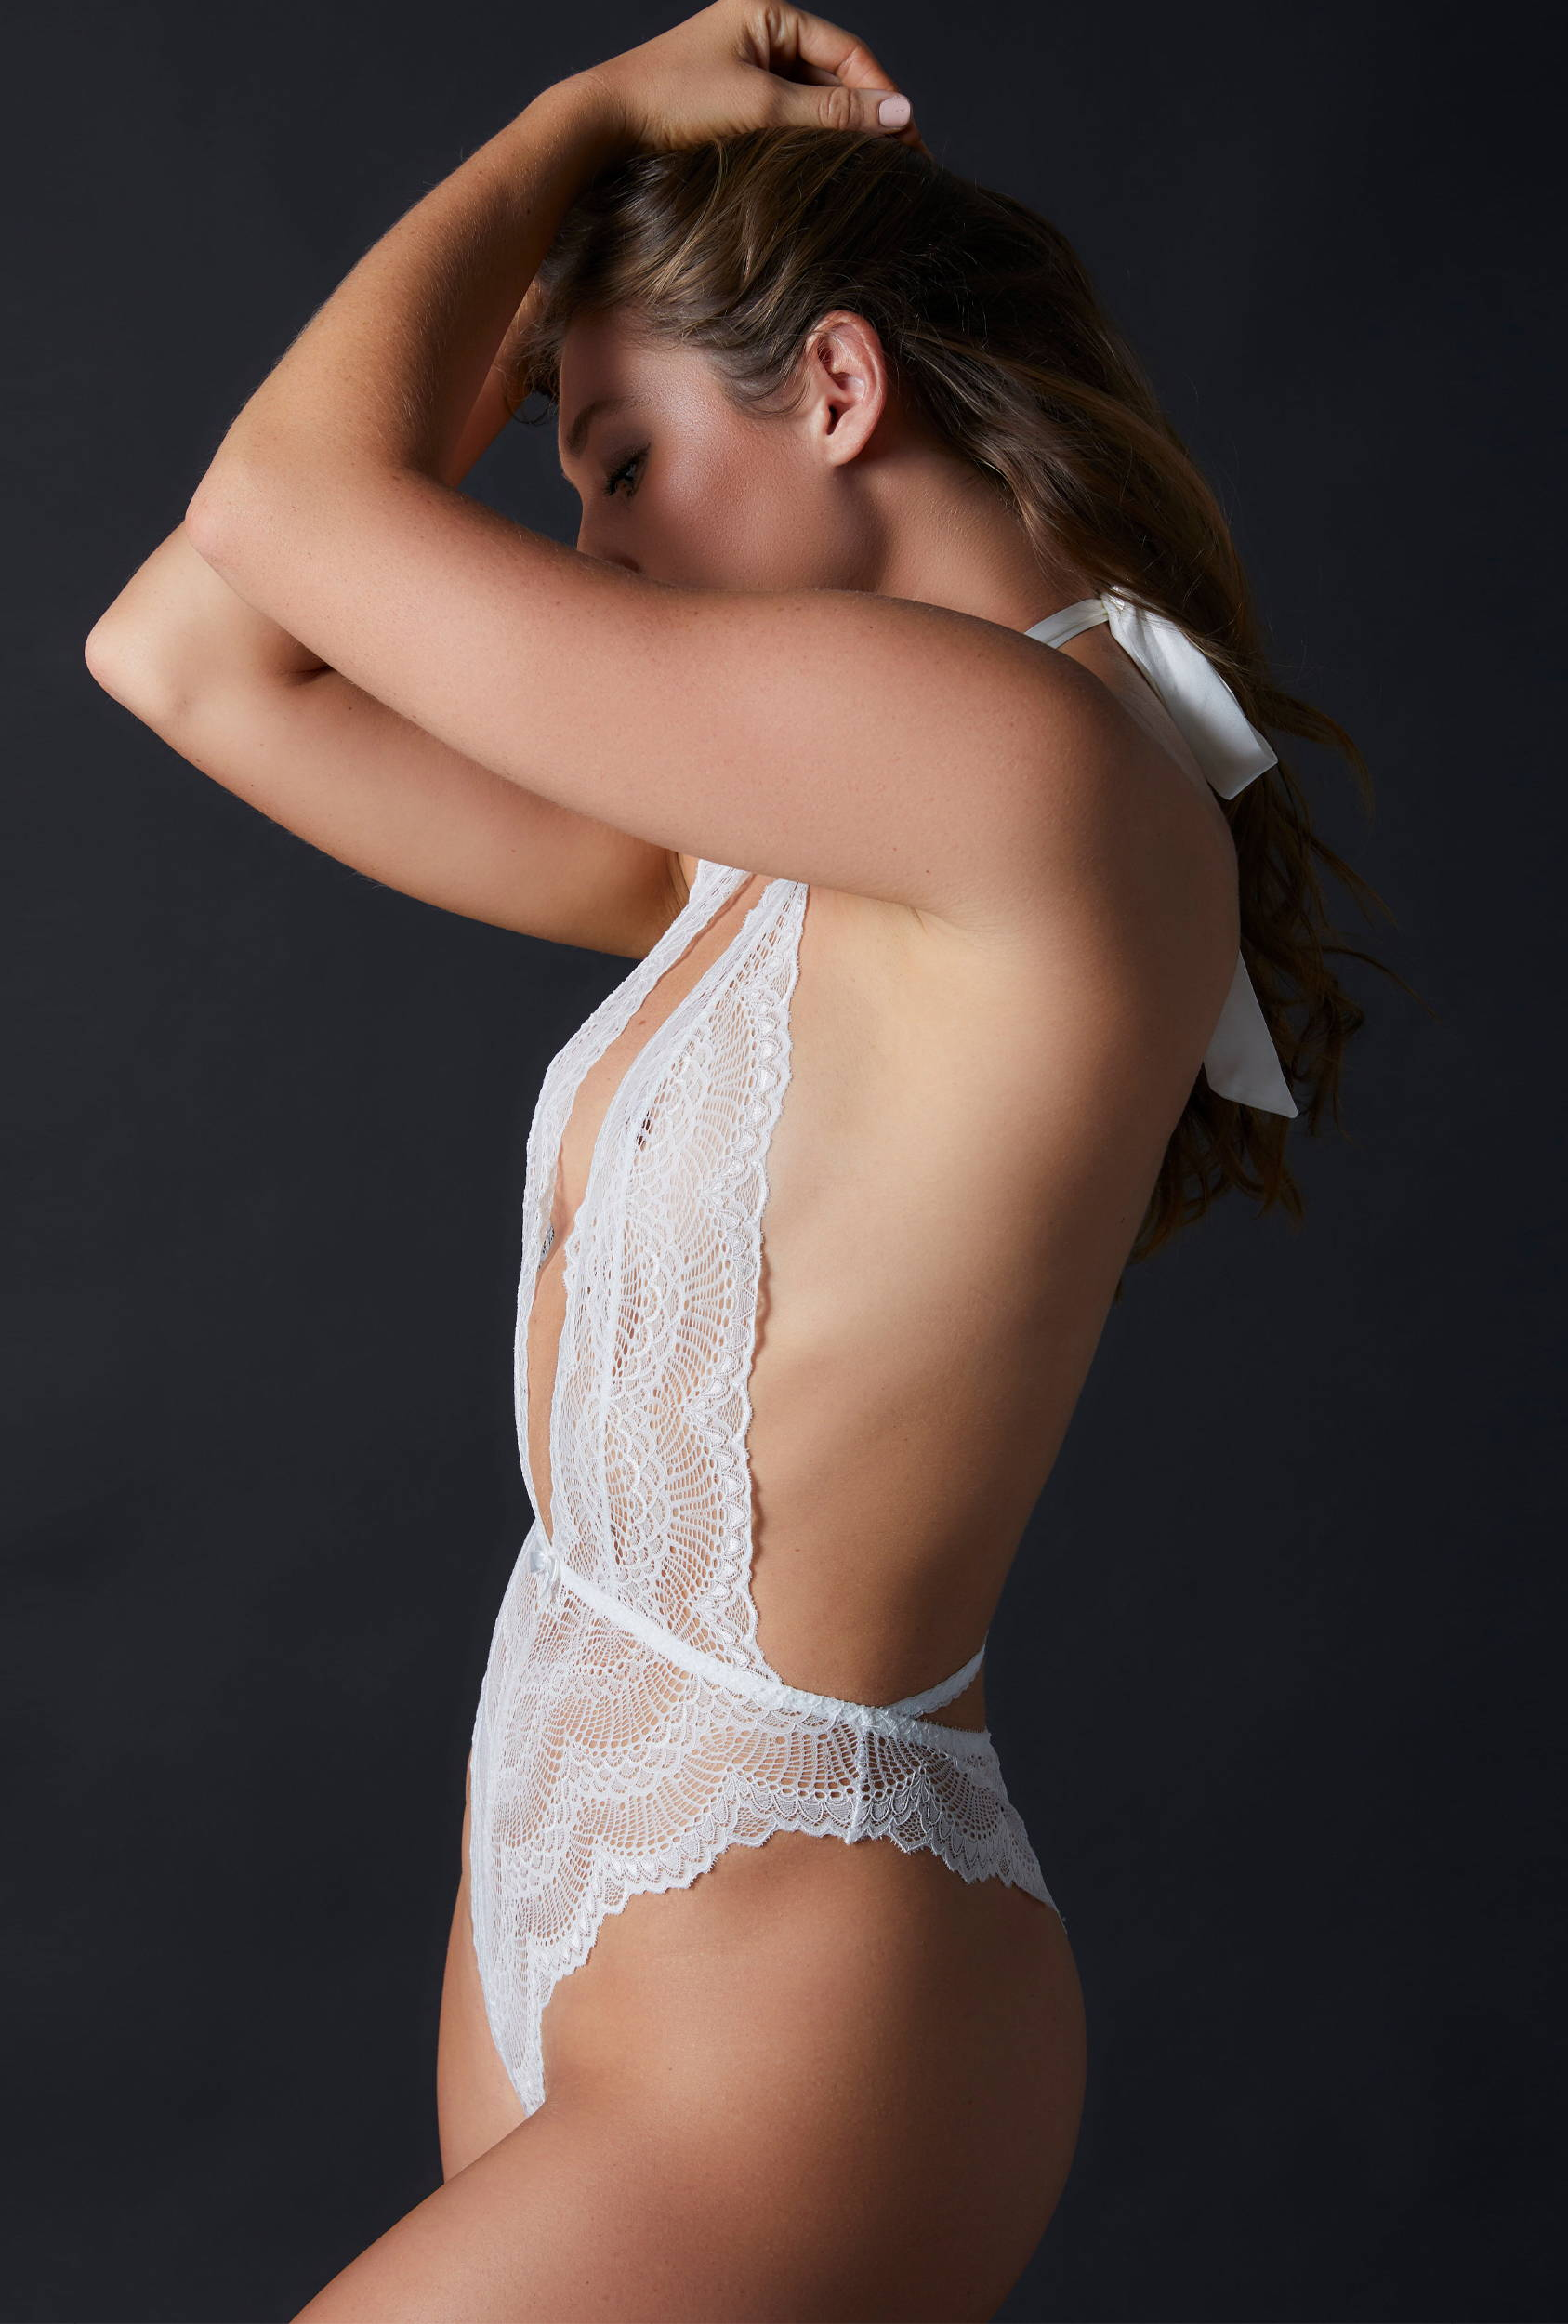 Woman wearing the best-selling favorite lingerie bodysuit - the Journelle Natalia